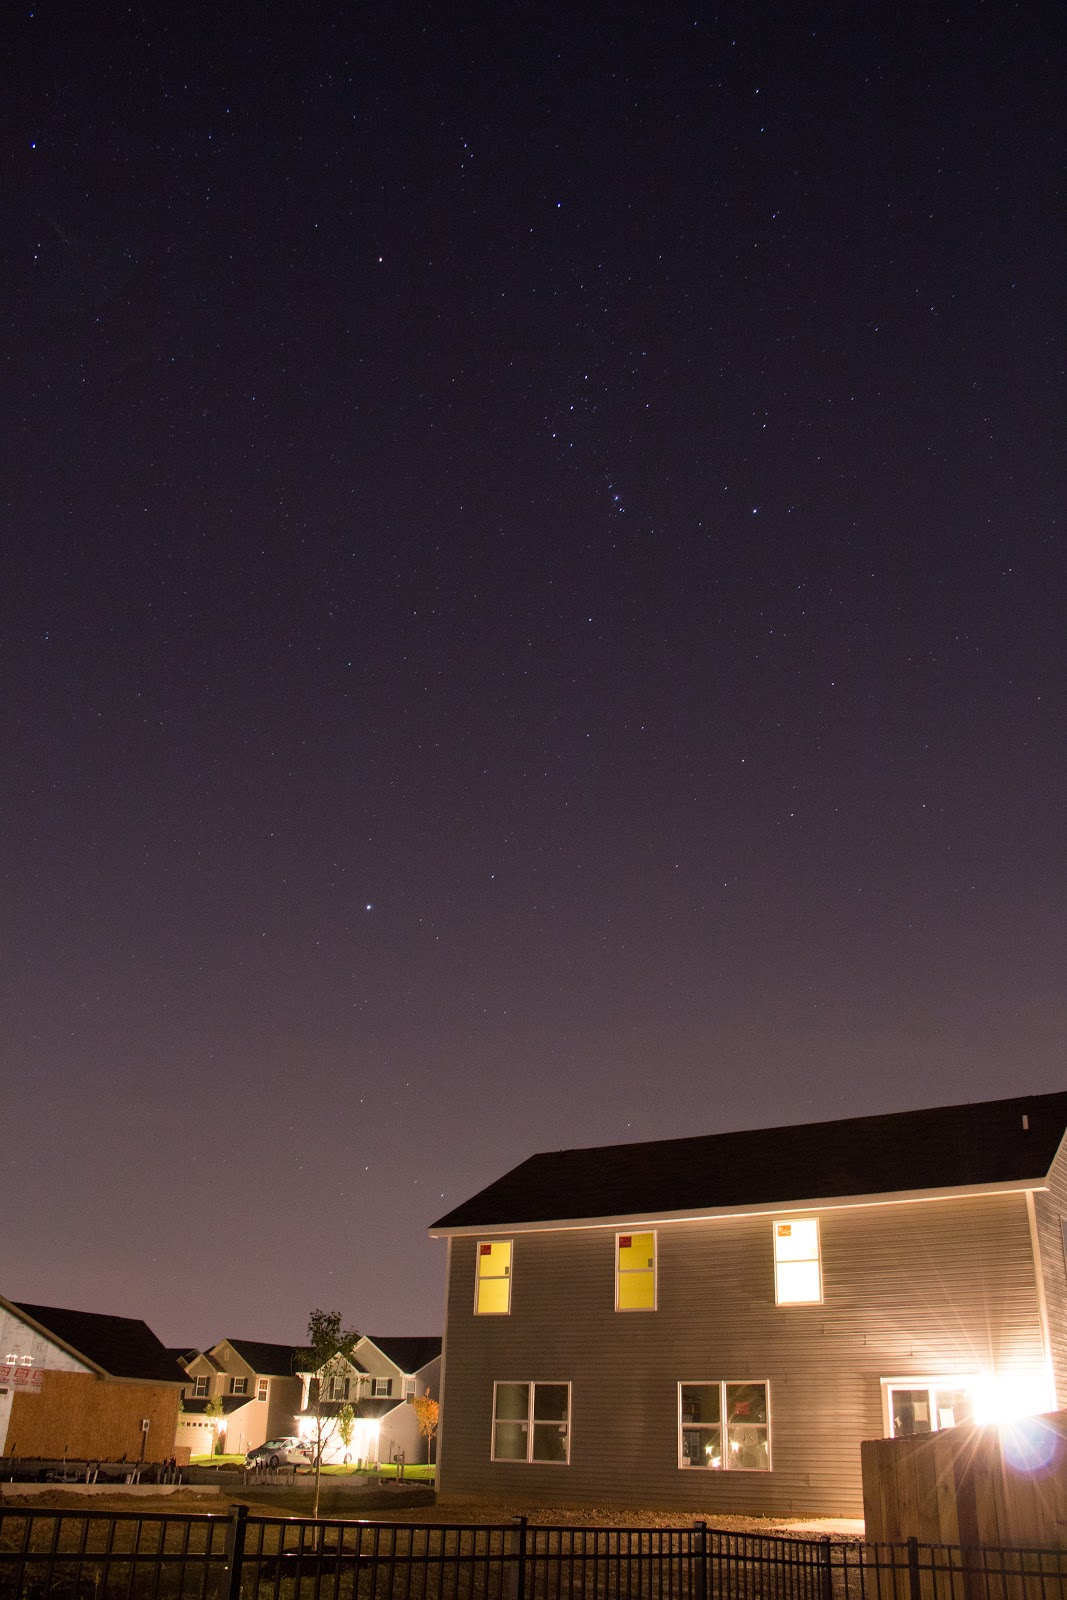 orion constellation over house